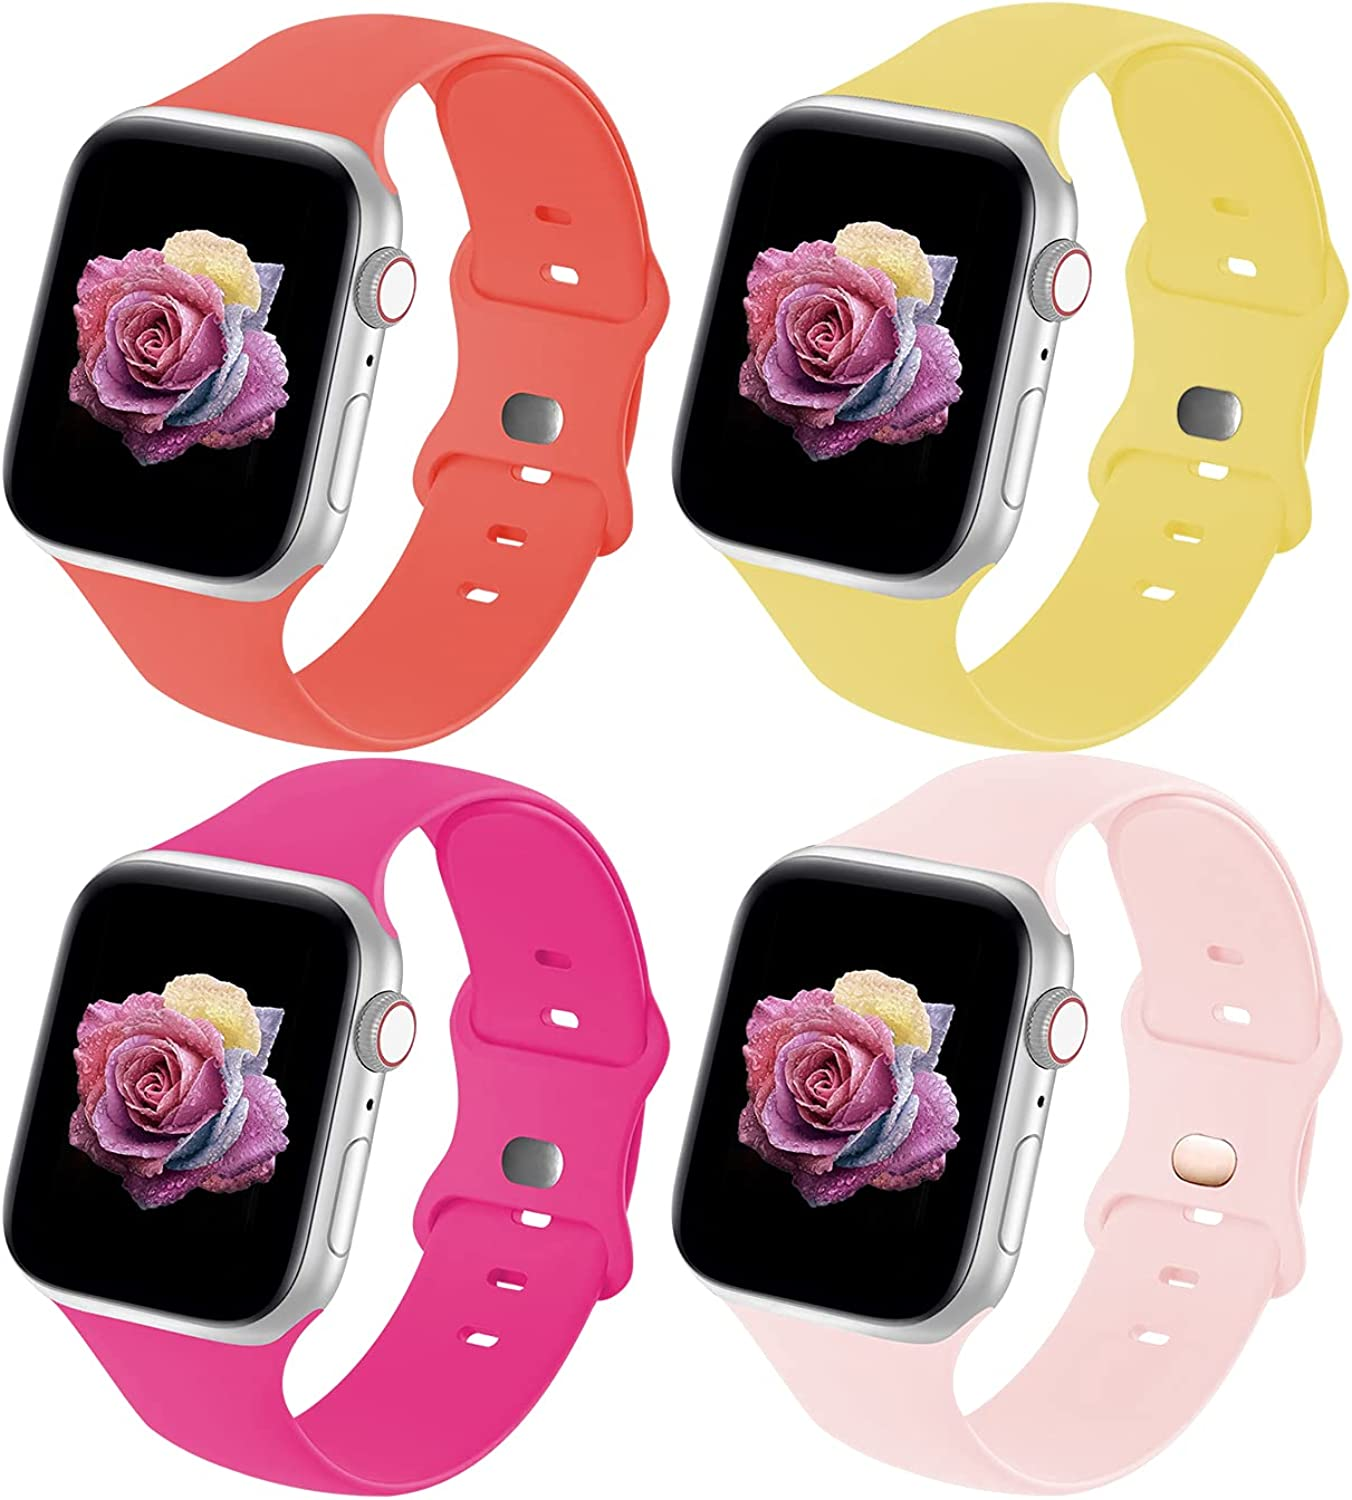 Crefort Sport Band Compatible with Apple Watch Bands 38mm 40mm 42mm 44mm for Women Men,Soft Silicone Replacement Strap Accessory Compatible for iWatch Wristband Series 6 3 5 SE 4 2 1 S/M M/L 4/7 Pack